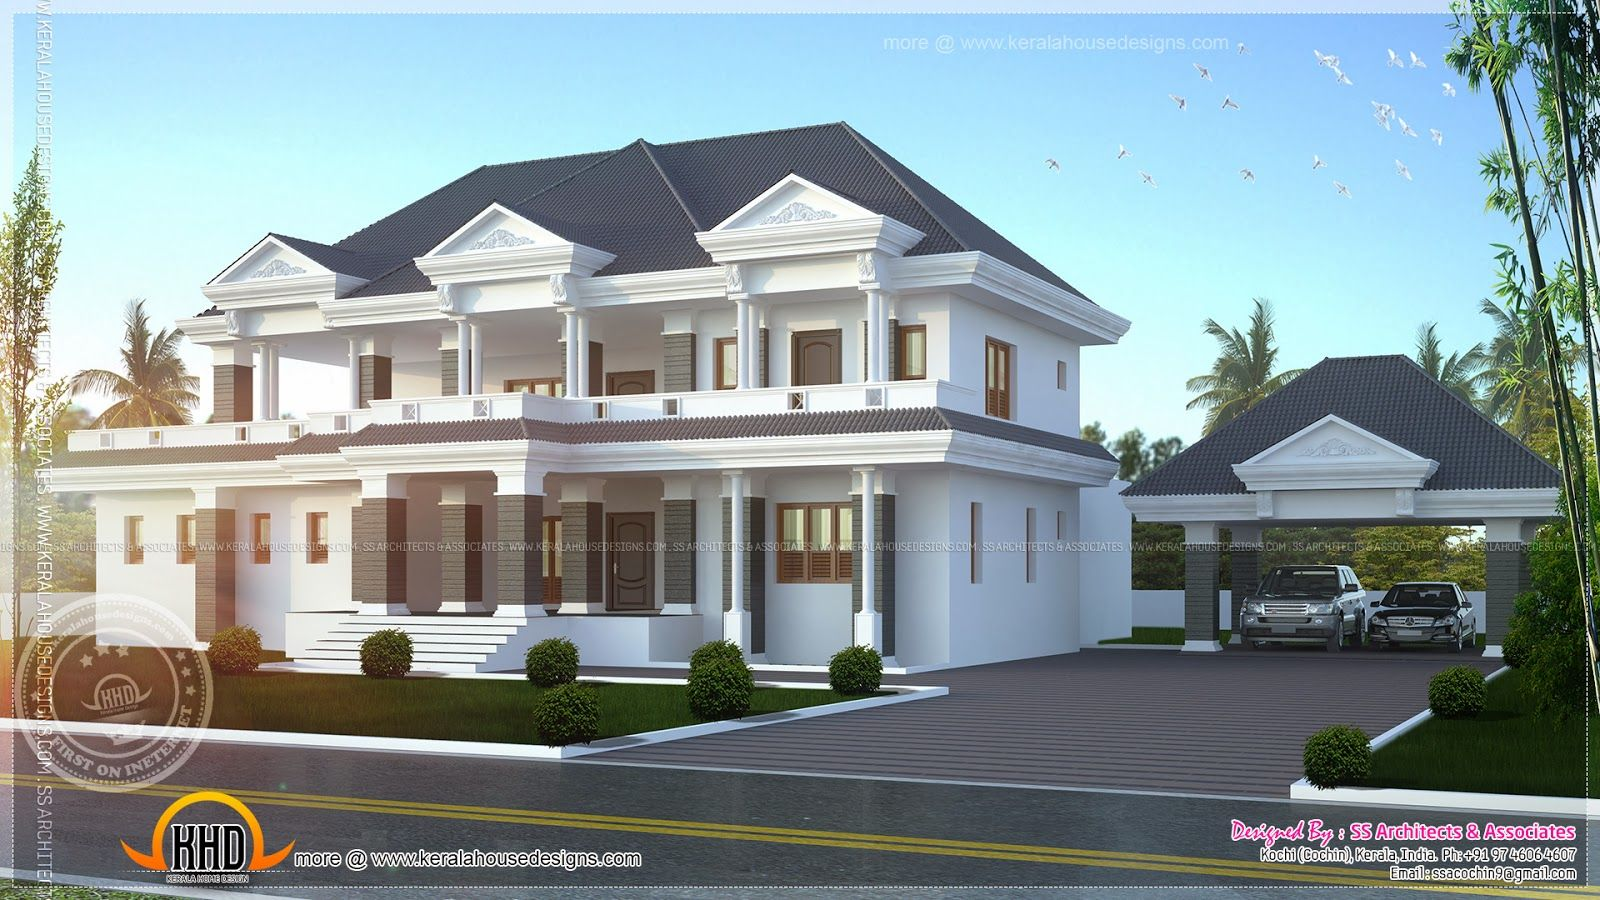 Luxury House Plans Posh Luxury Home Plan Audisb Luxury Luxury ...